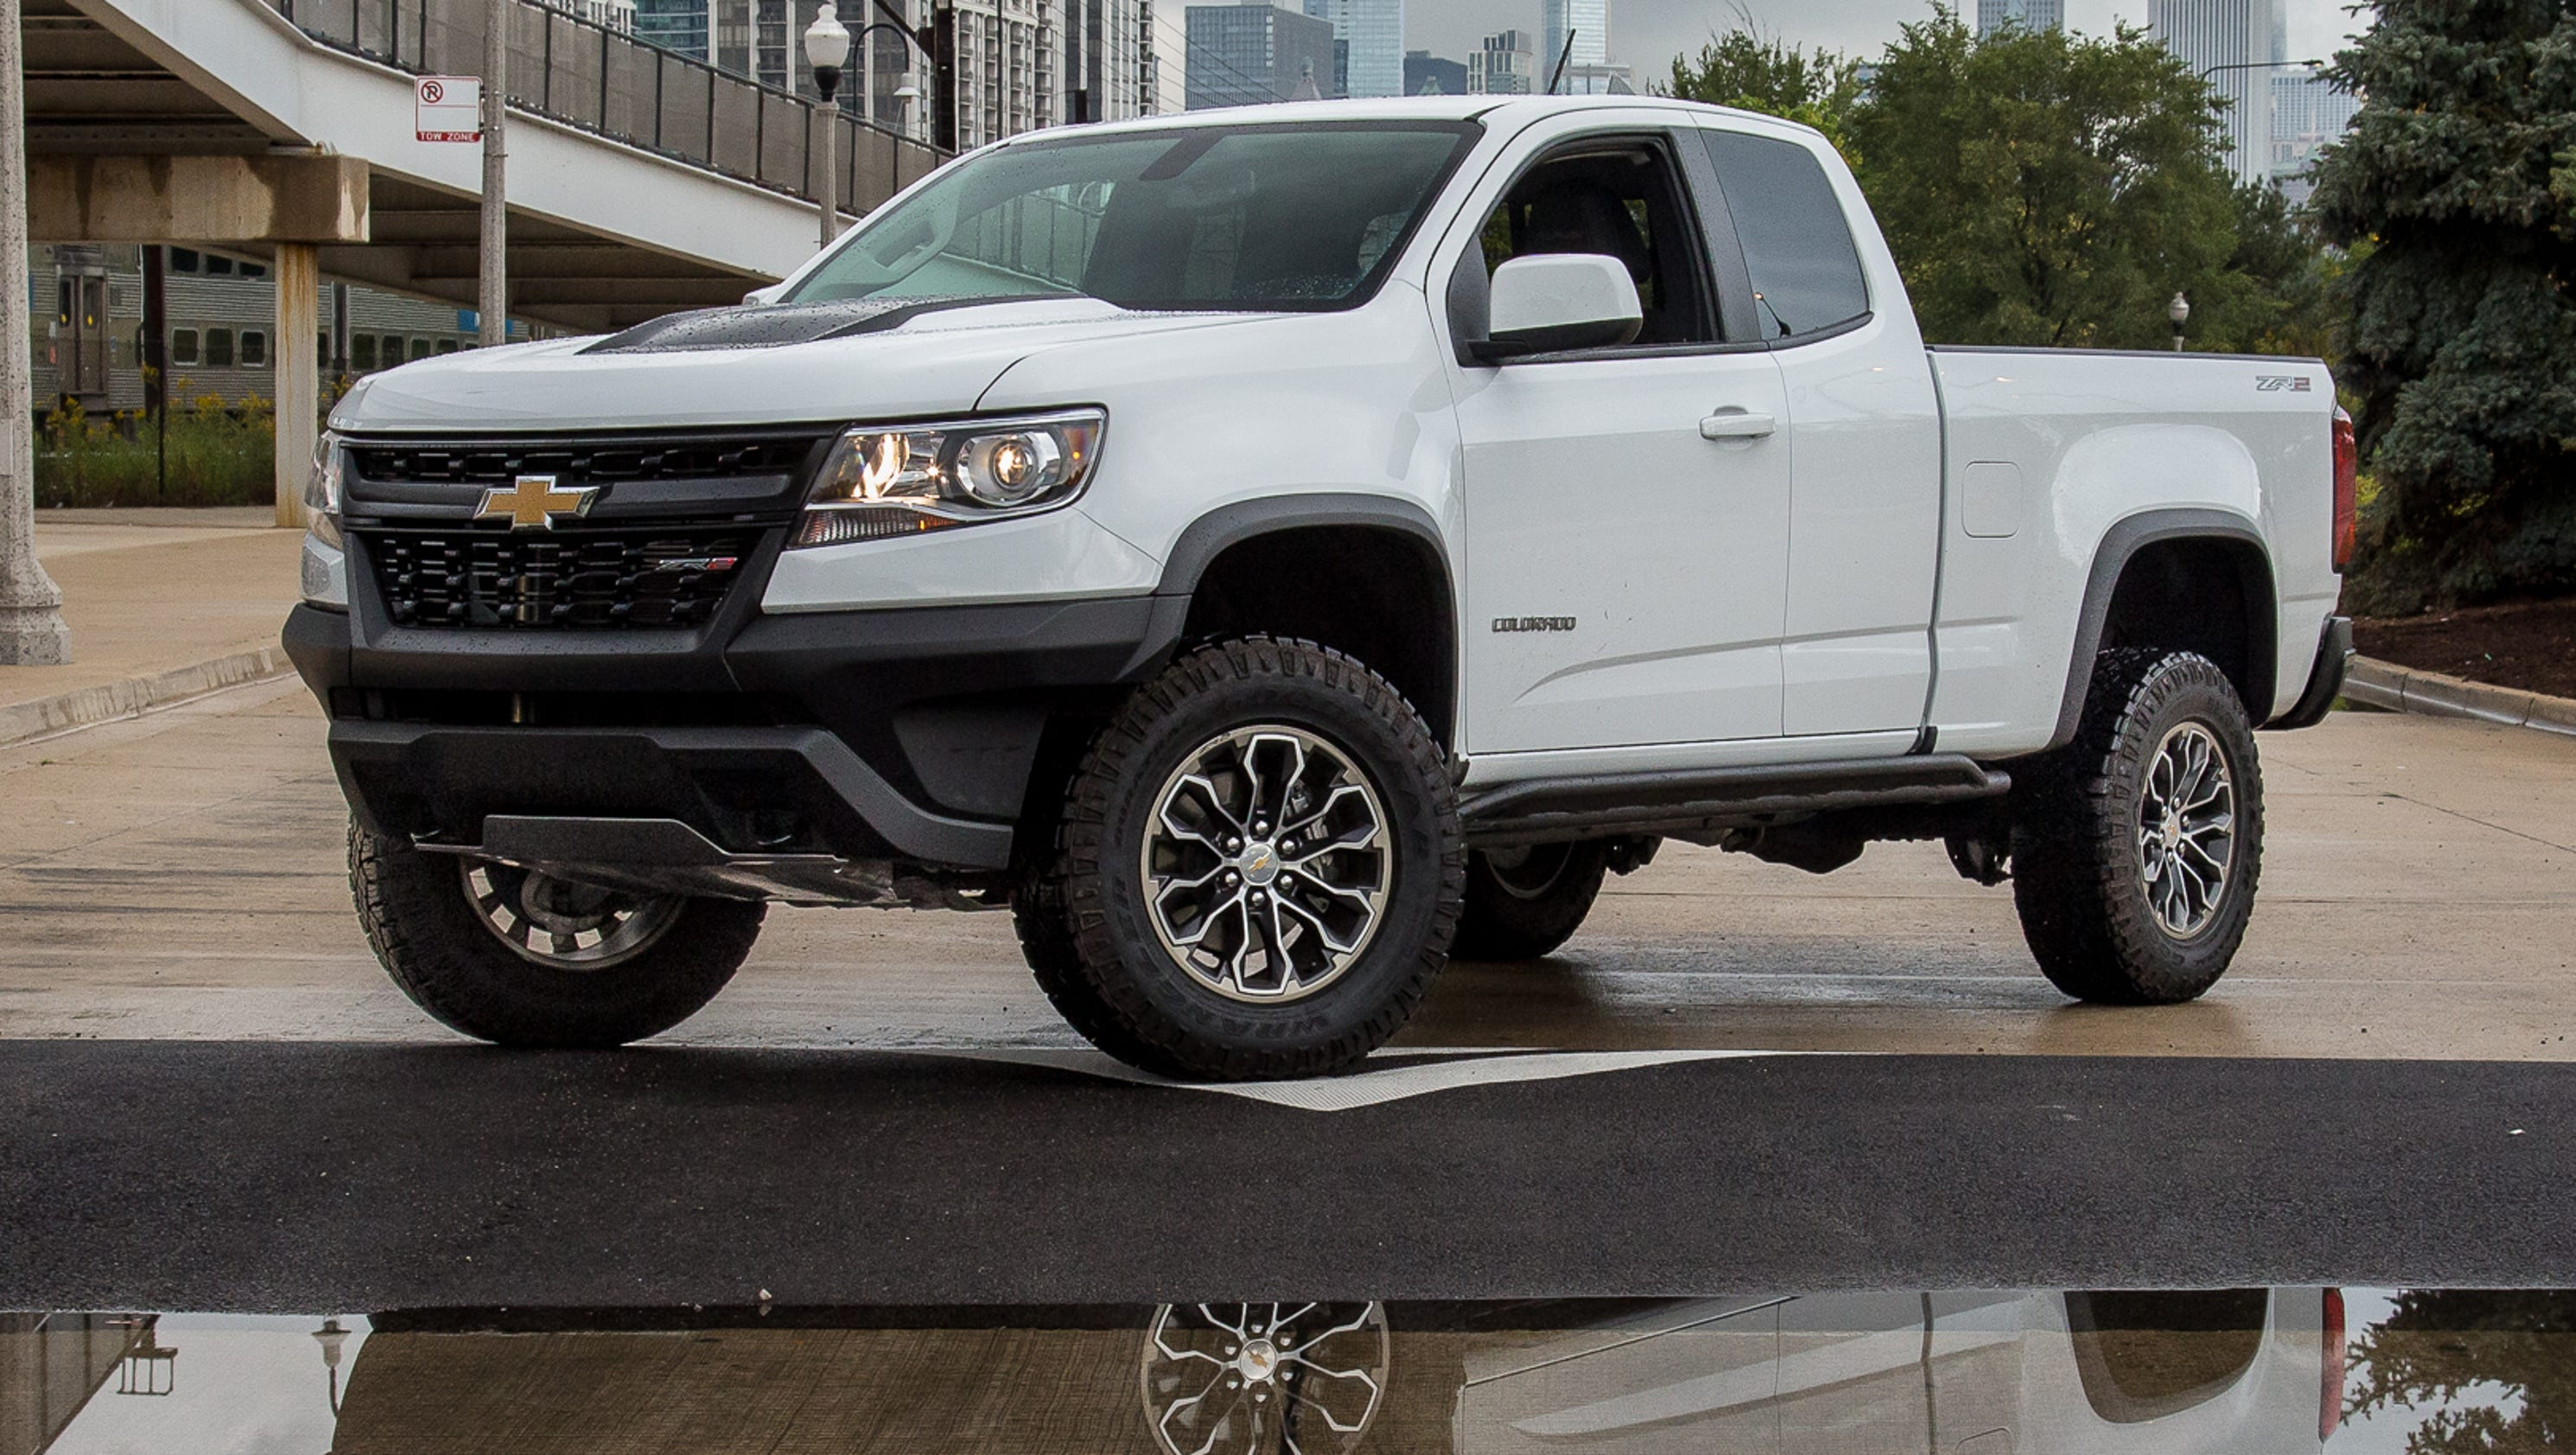 review chevrolet colorado zr2 is off road beast. Black Bedroom Furniture Sets. Home Design Ideas